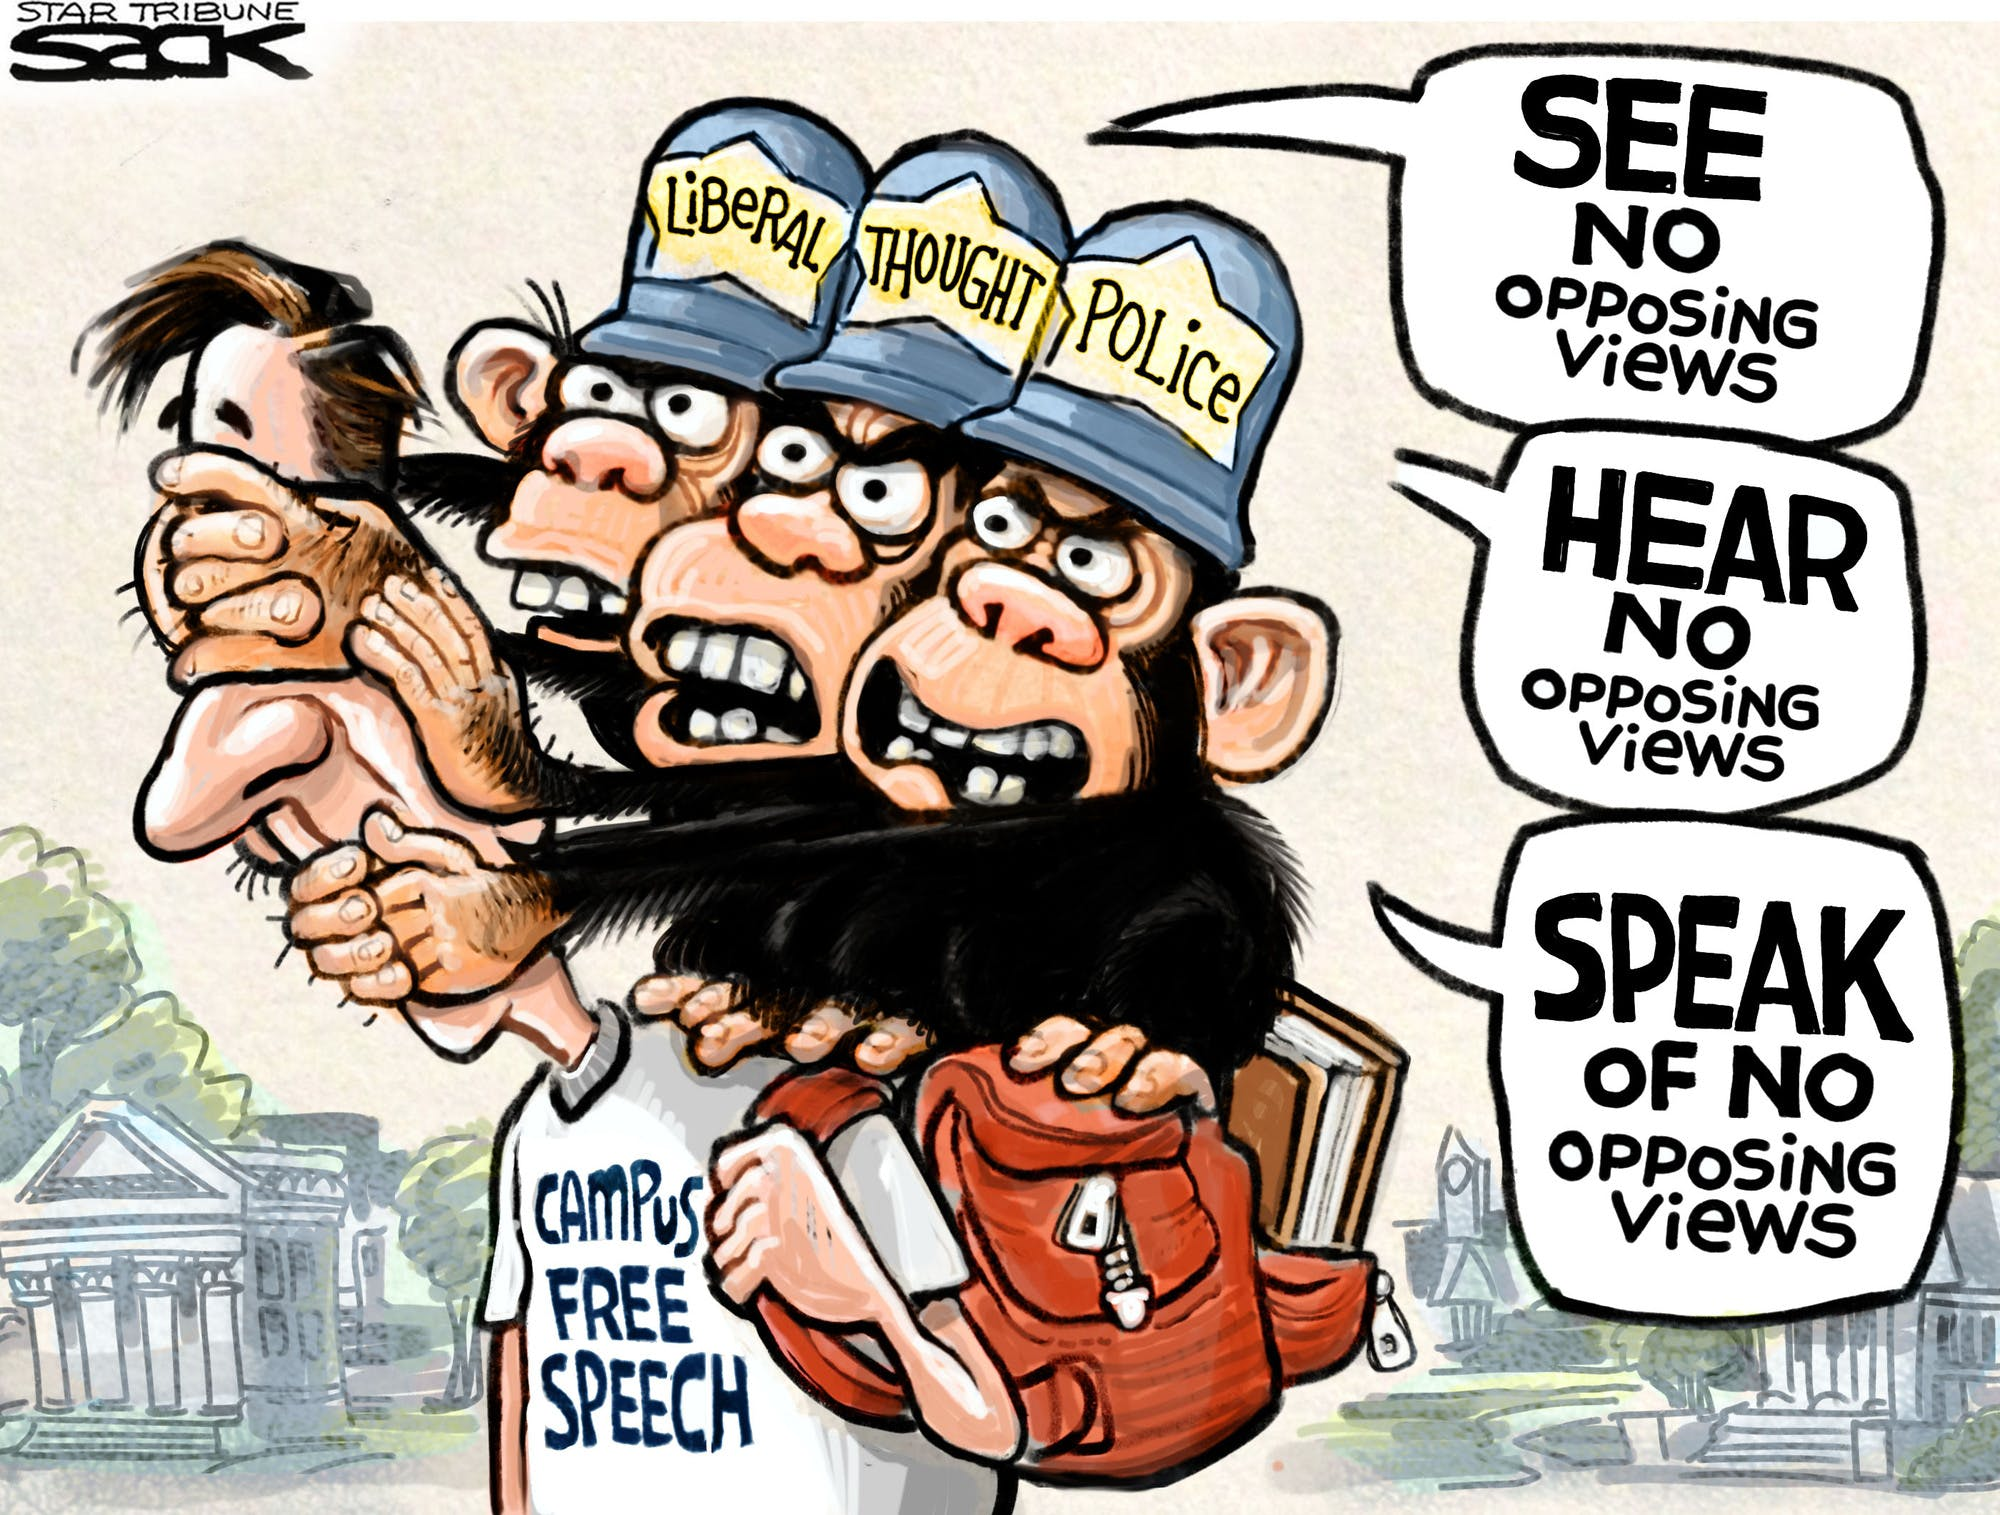 The New Home Of Intolerance To Free Thought And Free Speech